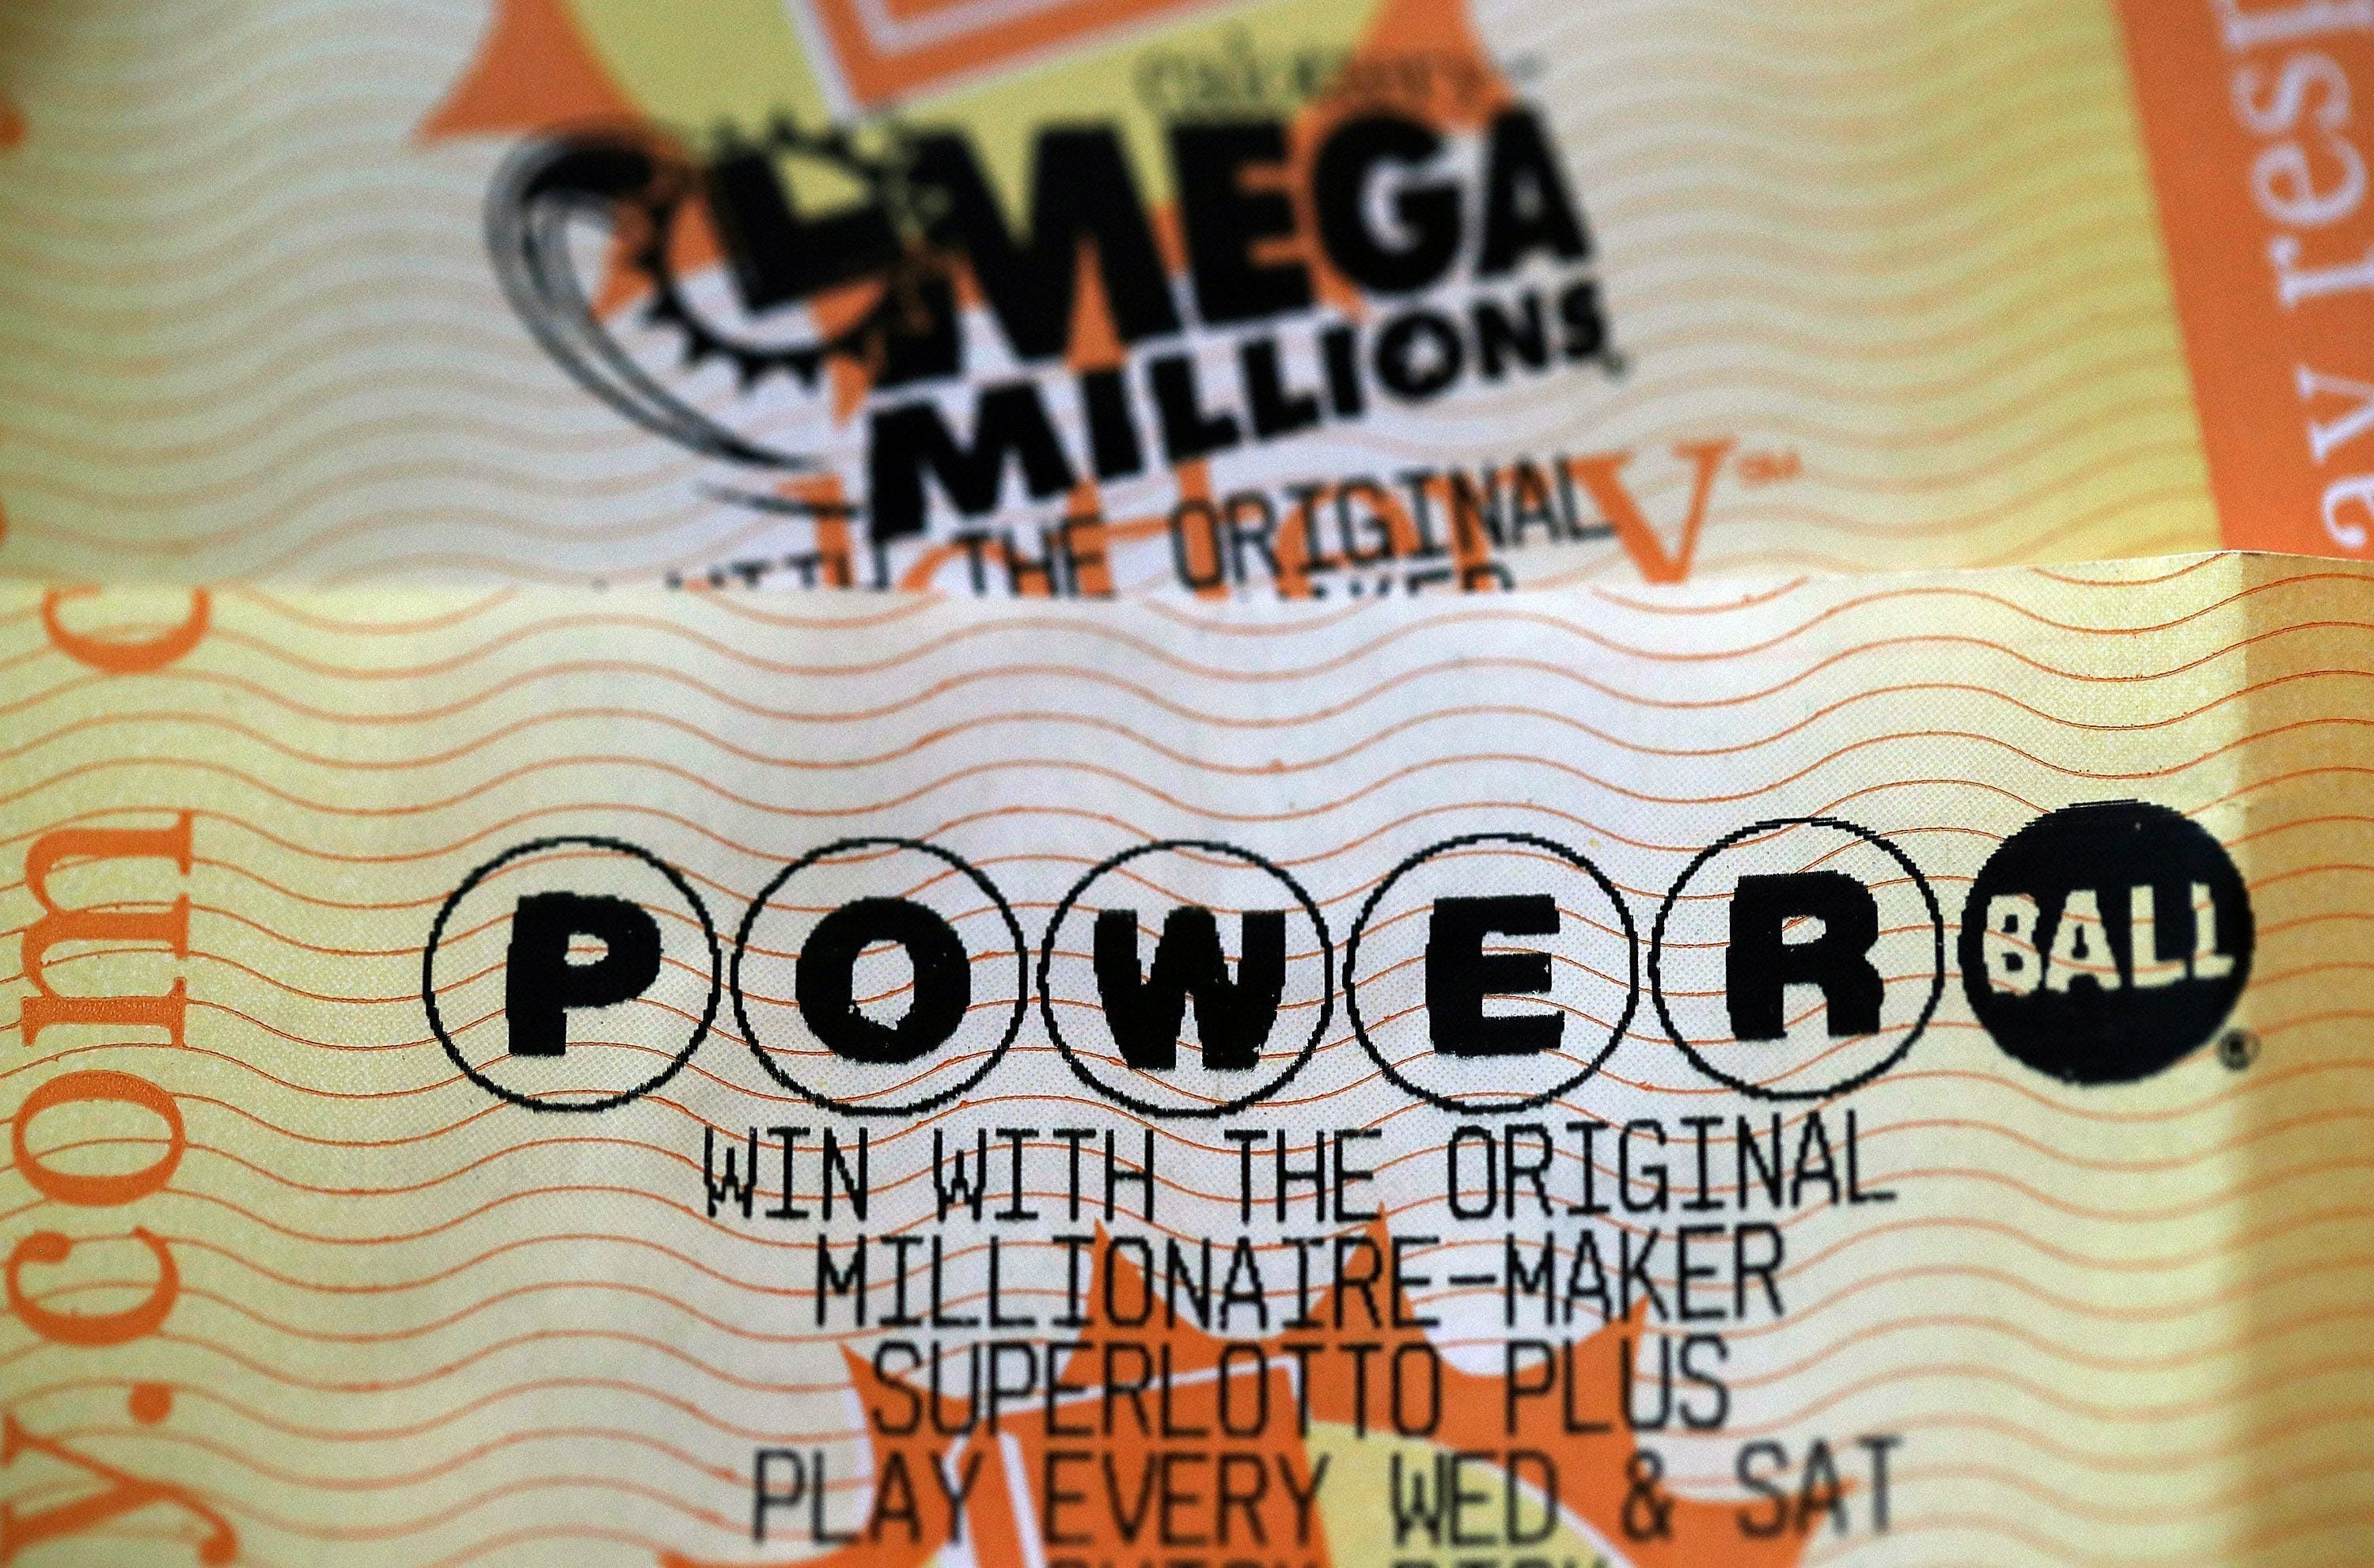 Top prizes claimed ga lottery numbers